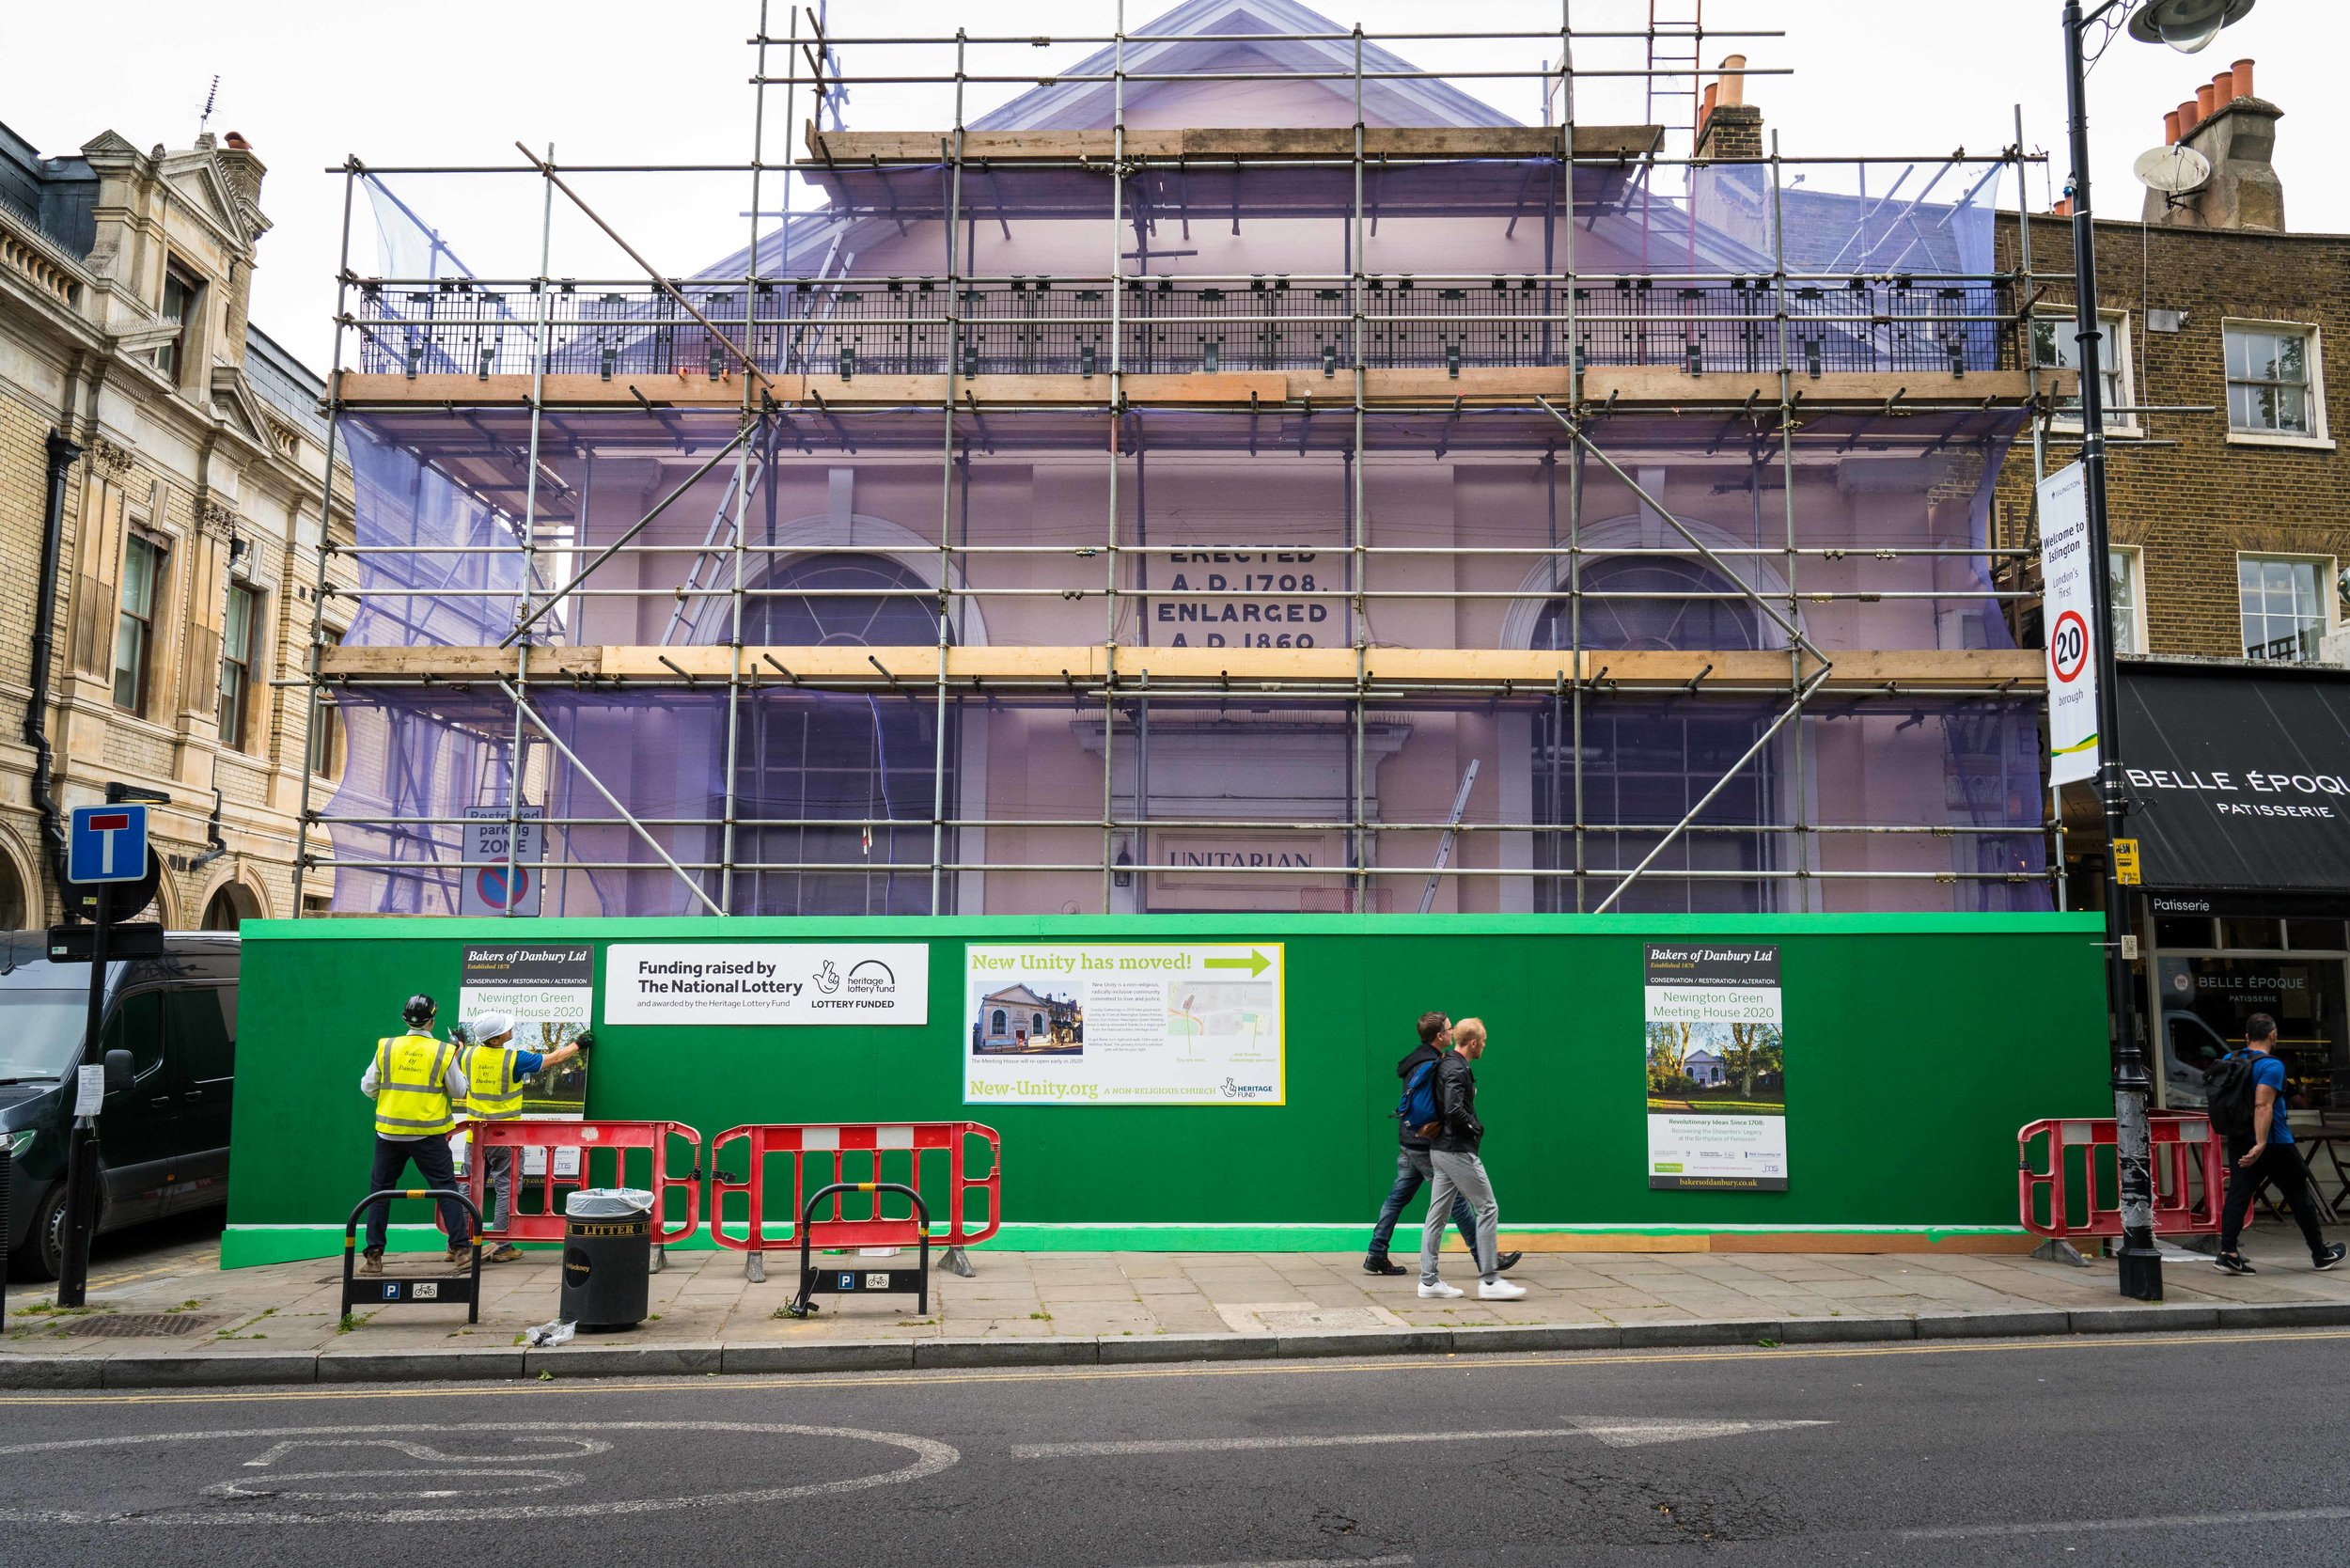 The Meeting House covered in scaffolding